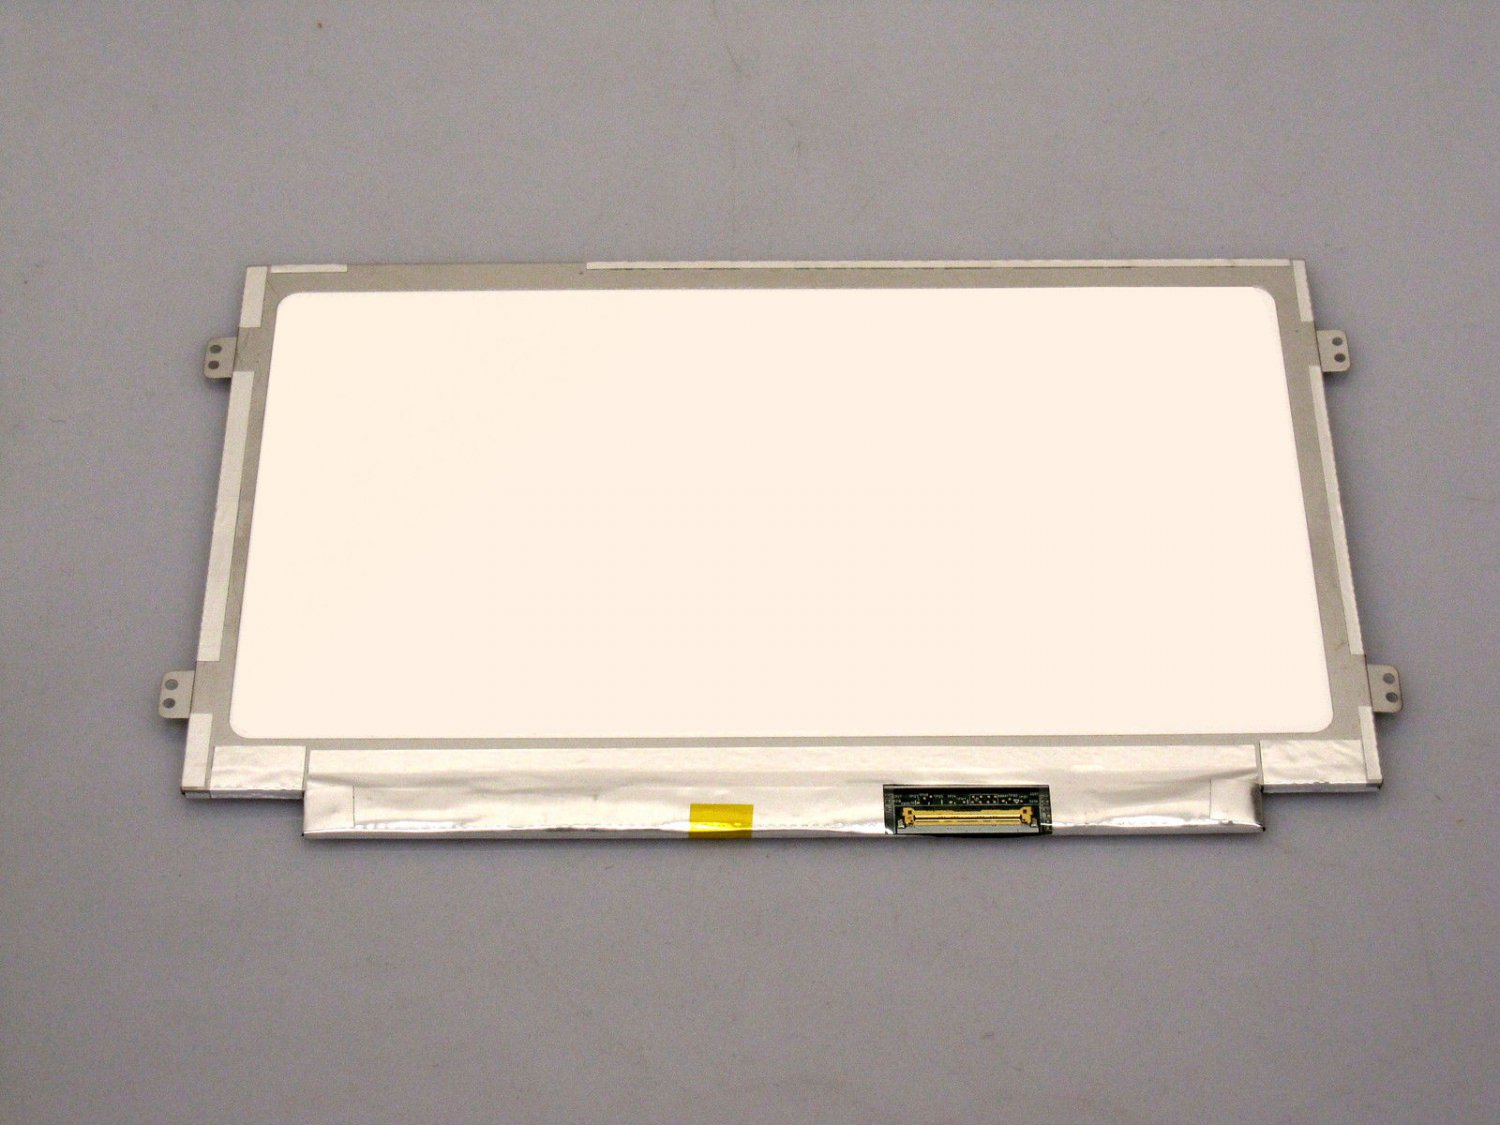 "Laptop LCD Screen For Chi Mei N101l6-L0d Rev.C1 10.1"" Wsvga"